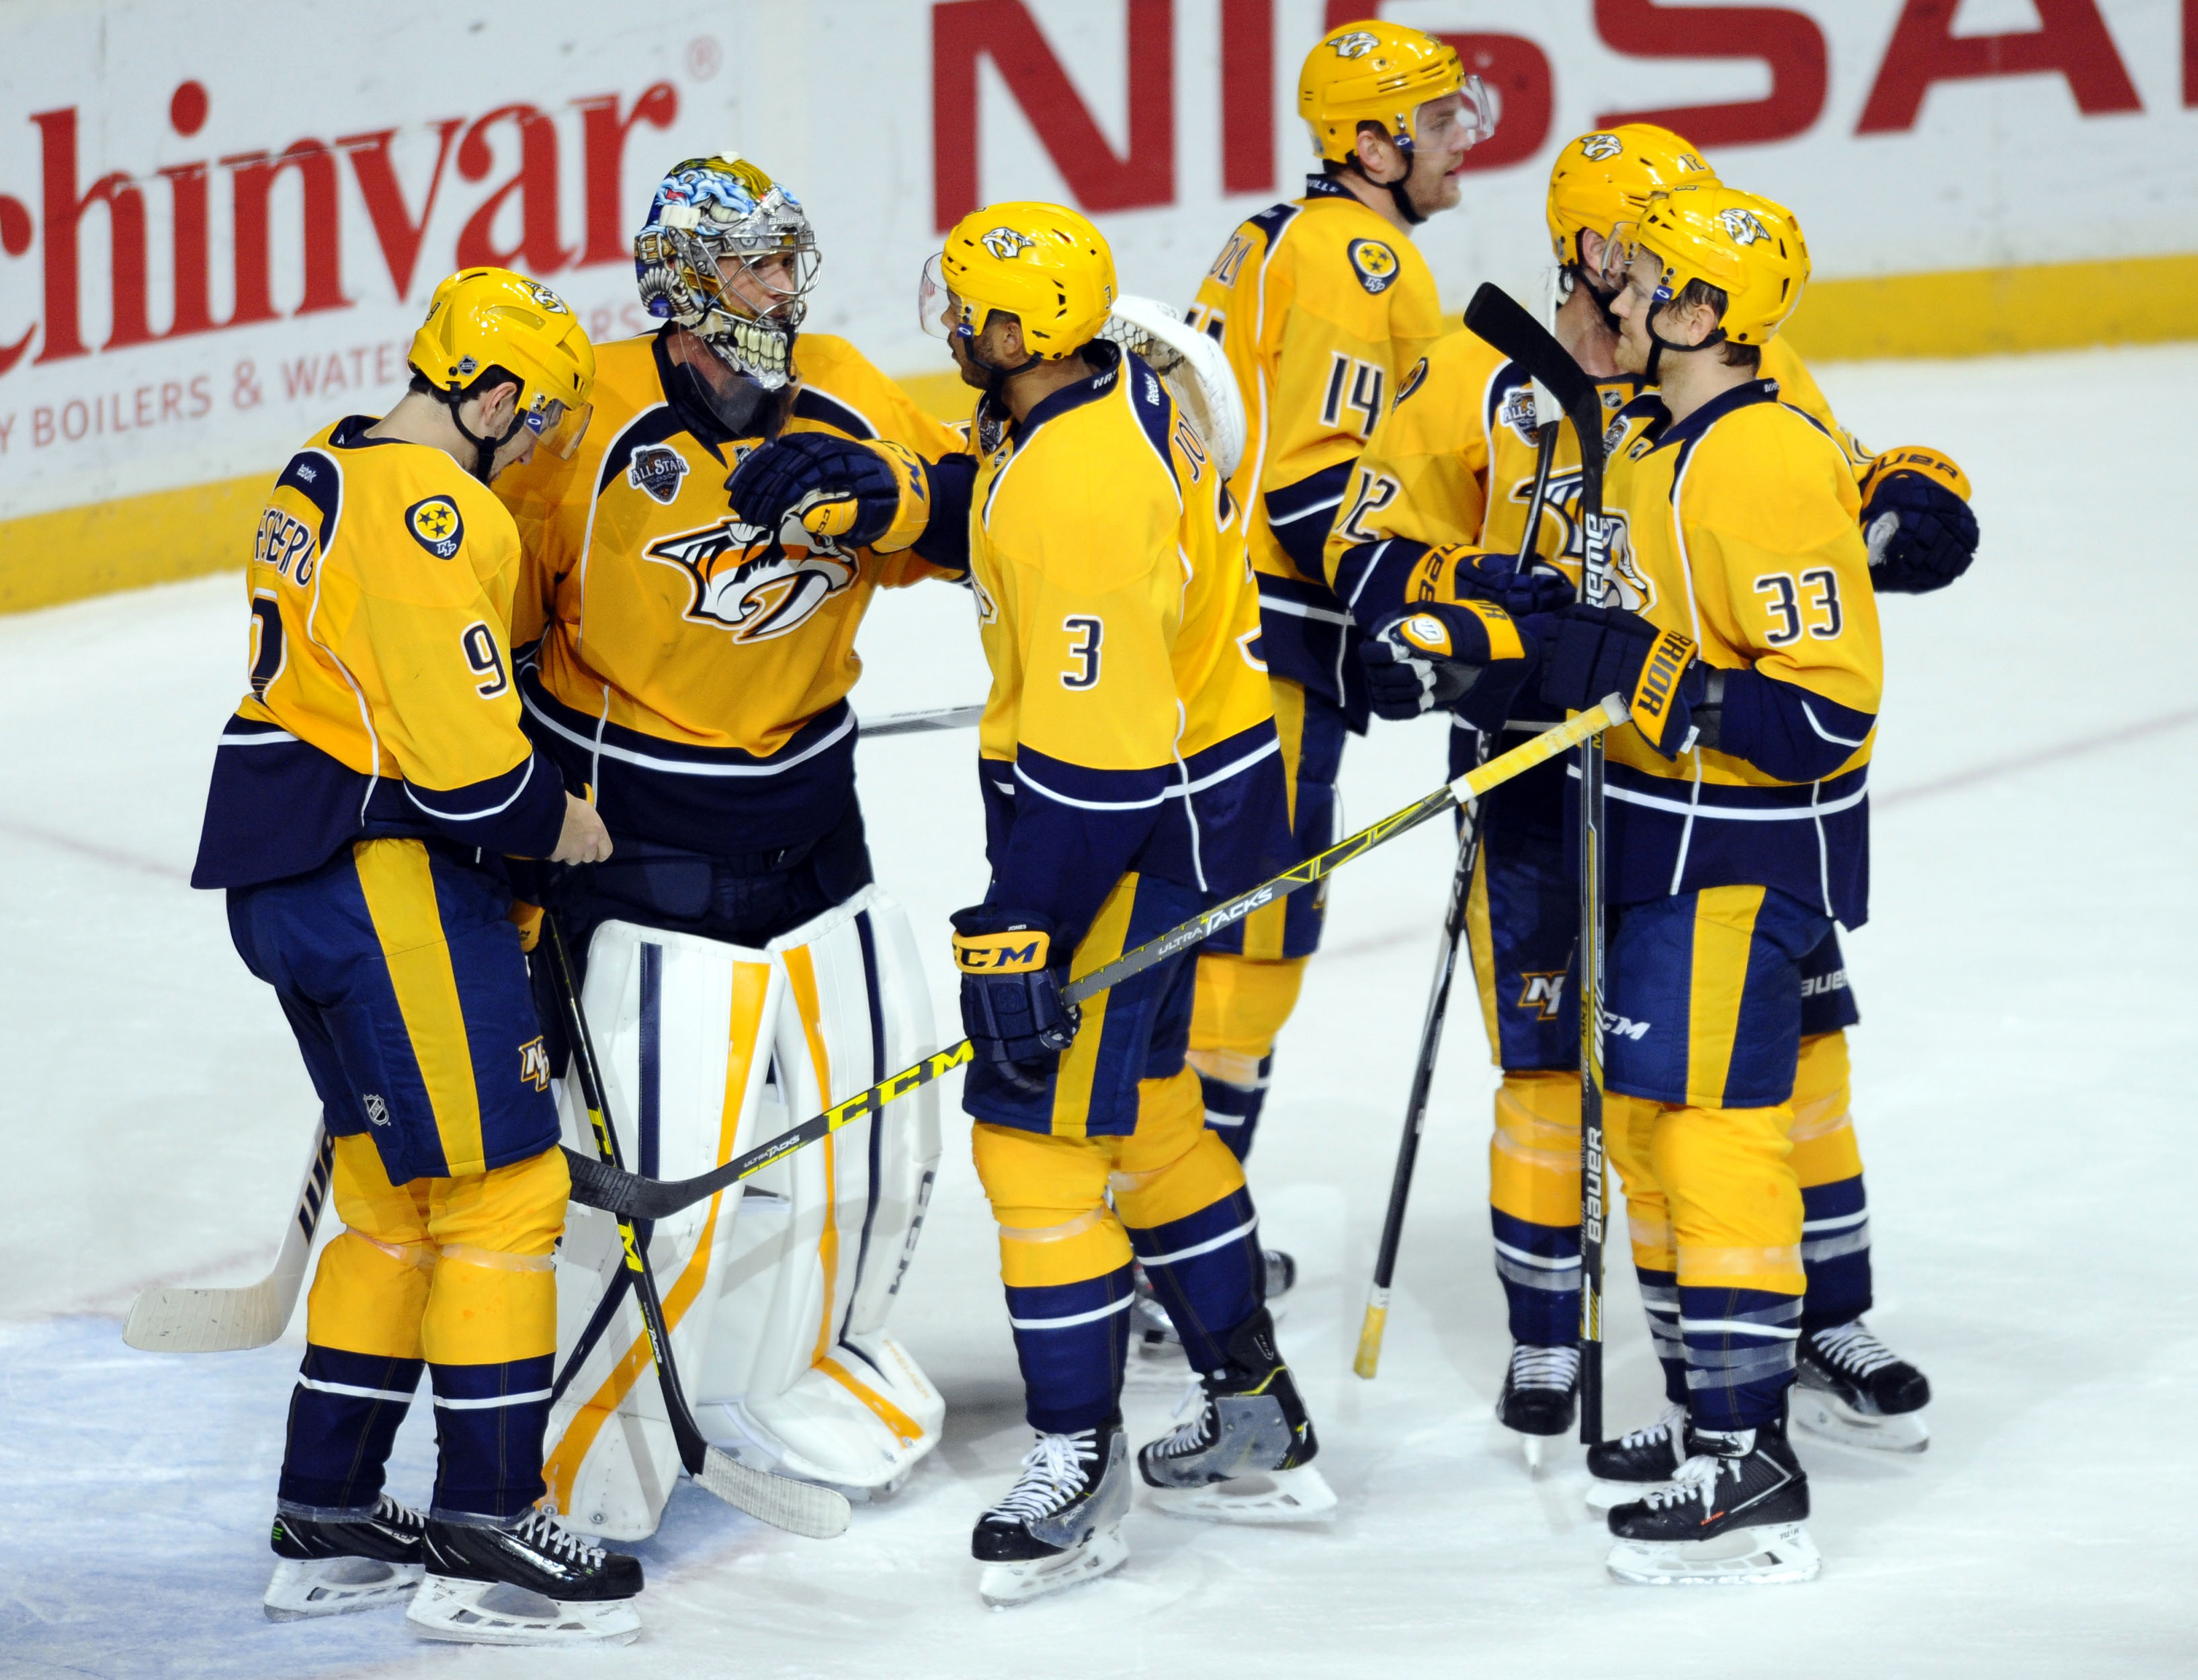 Two games for Nashville, two wins earned. The Predators seem to be starting off exactly how they did last season.